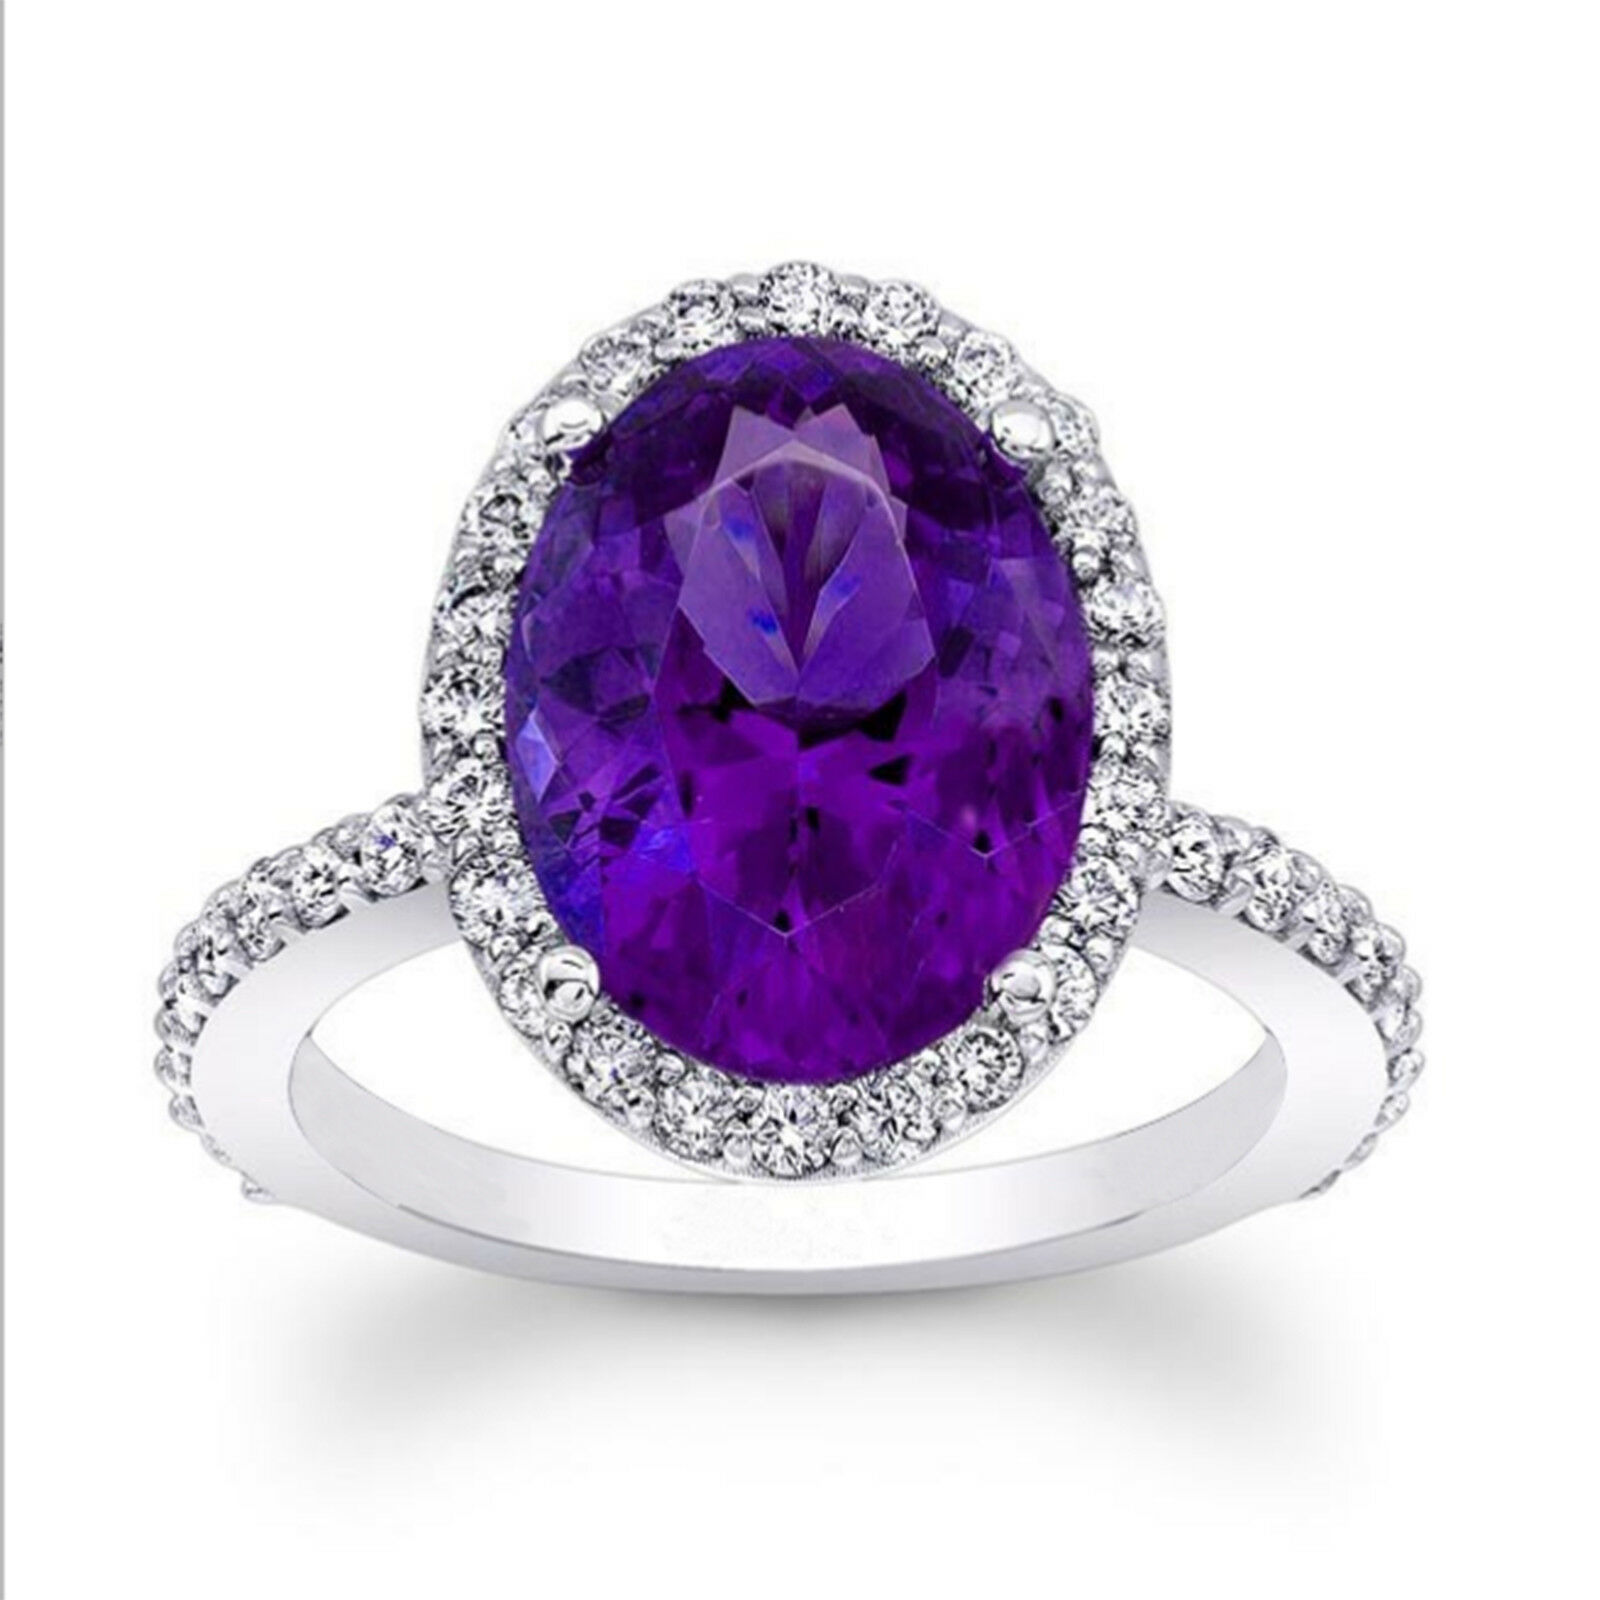 4.50 Ct Oval Cut Amethyst Diamond Ring 14K White gold Engagement Rings Size 6 7